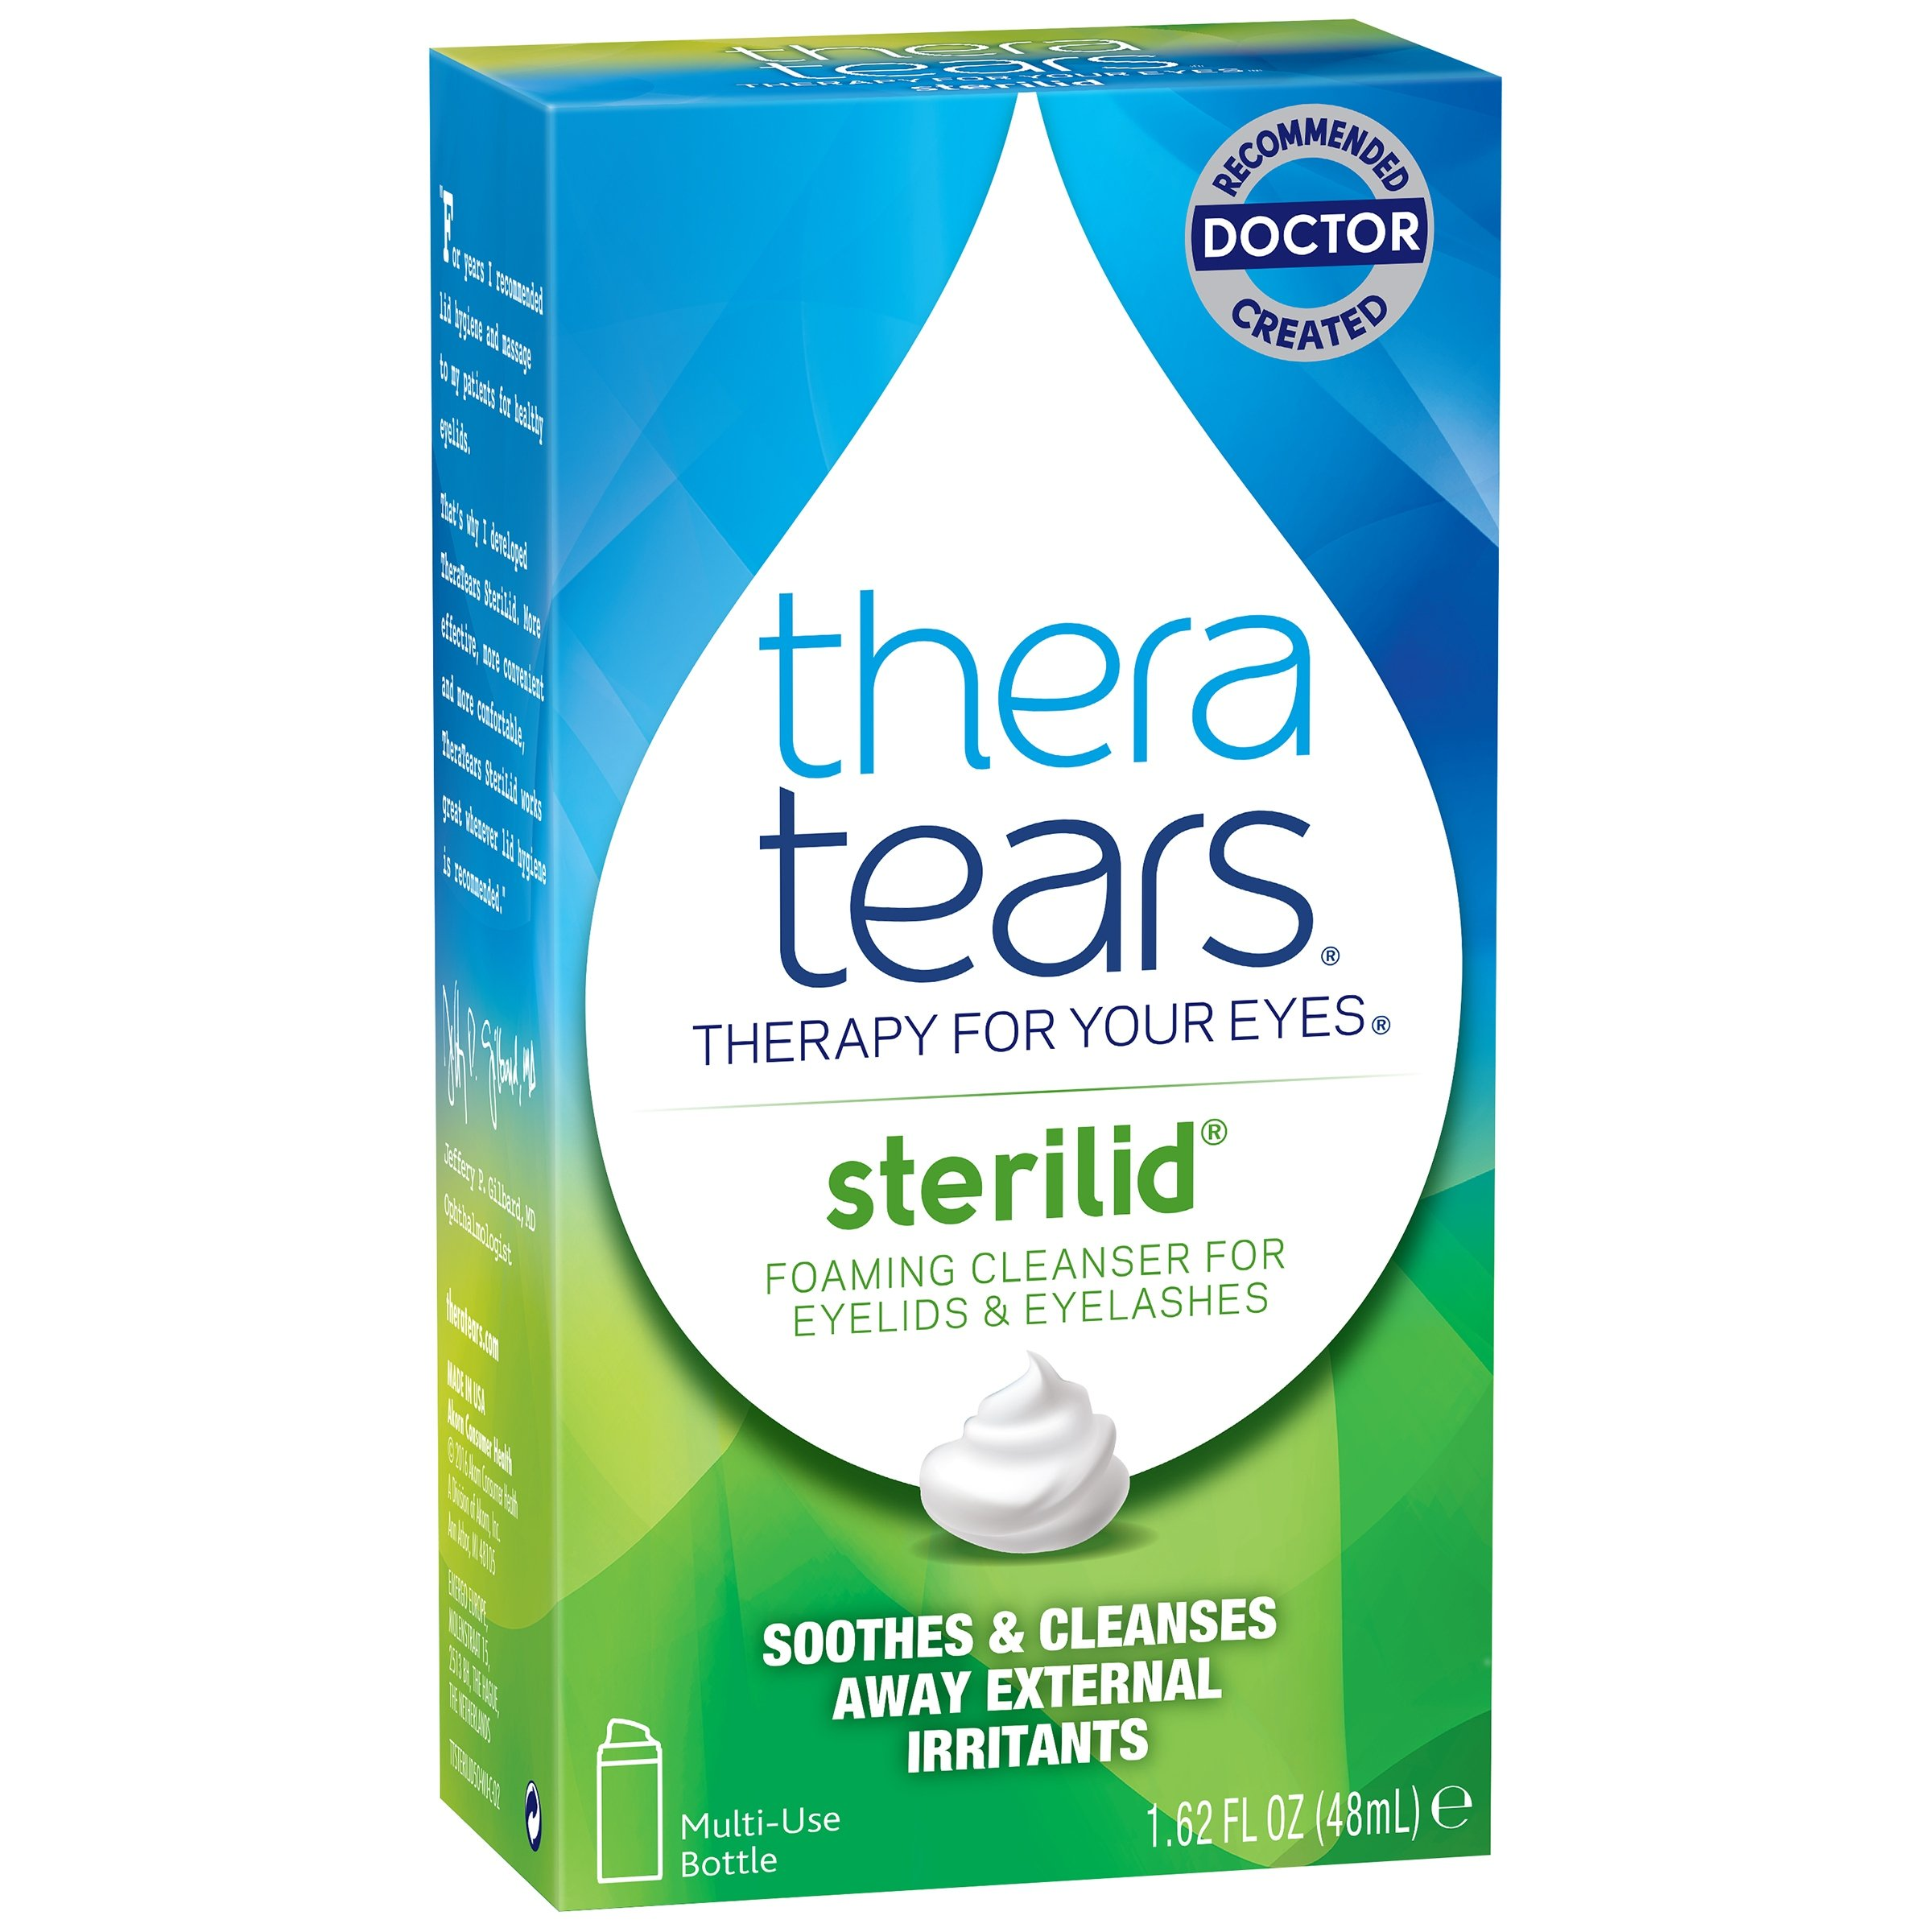 TheraTears Sterilid Eyelid Cleanser, Multi. SP 5 Pack ( 8.10 FL OZ Total ) Thera-dn by Thera Tears